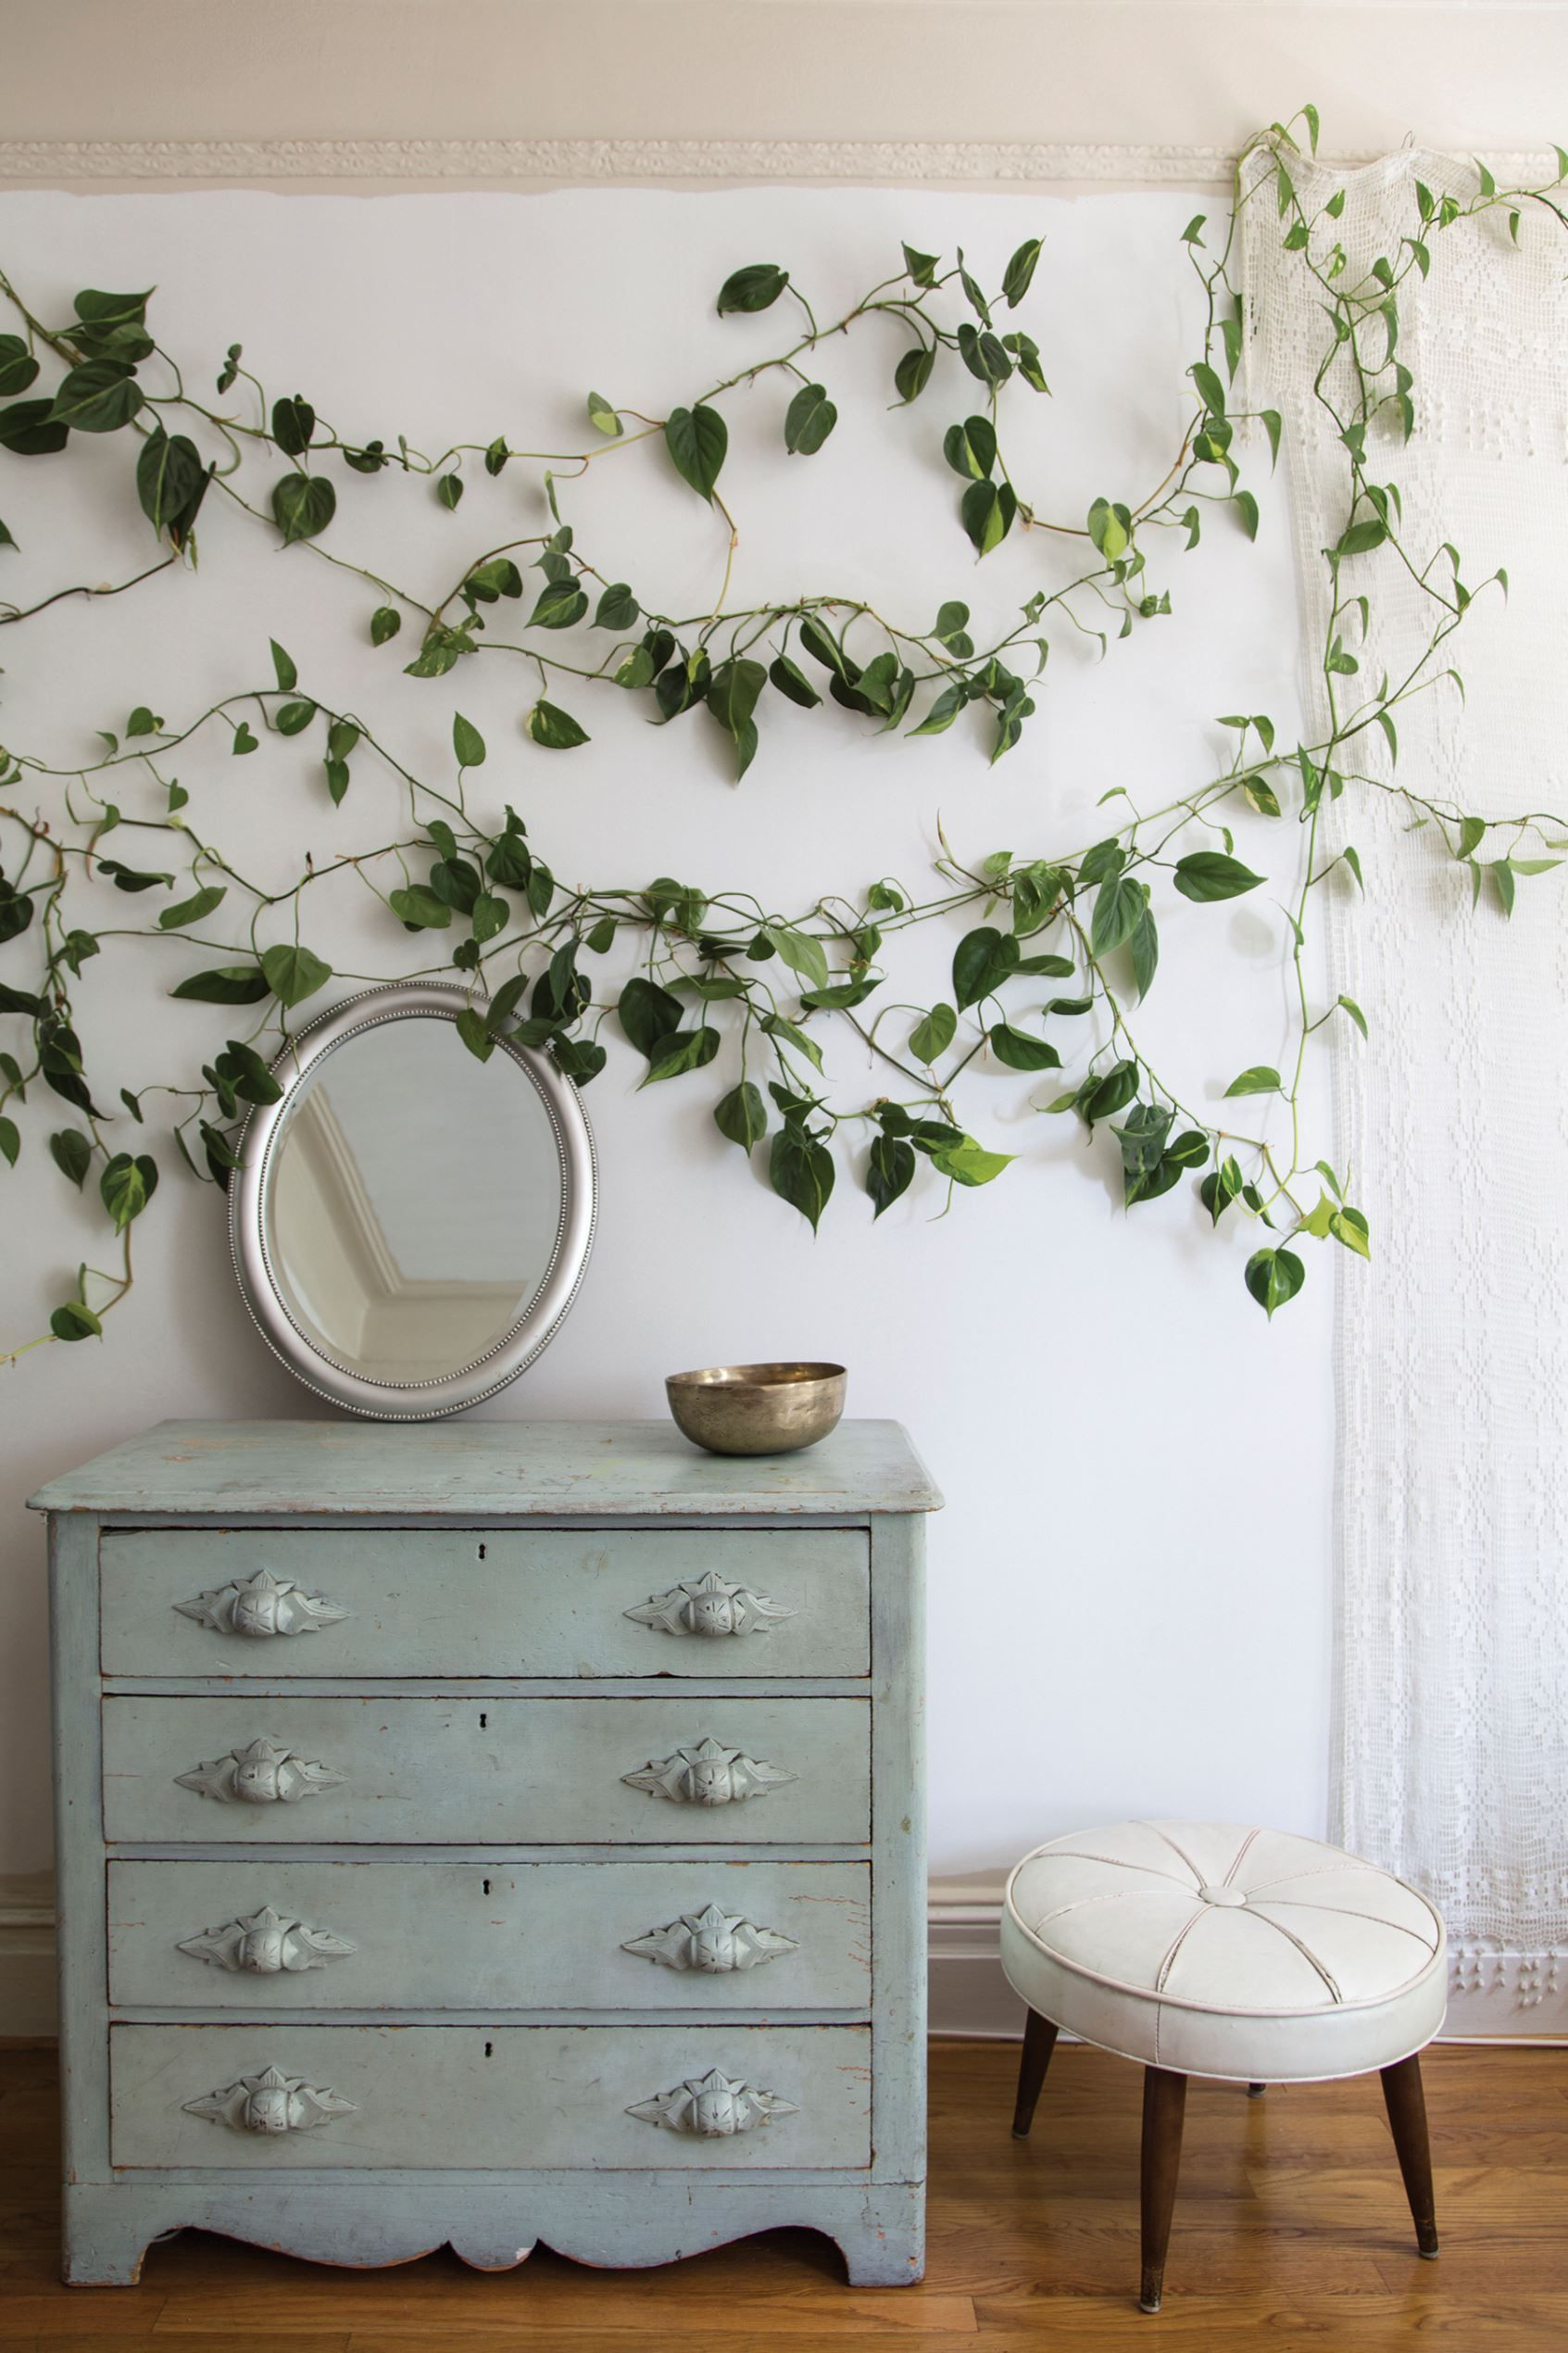 Creative Decorating With Houseplants From Floor To Ceiling Decor Hanging Plants Home Decor